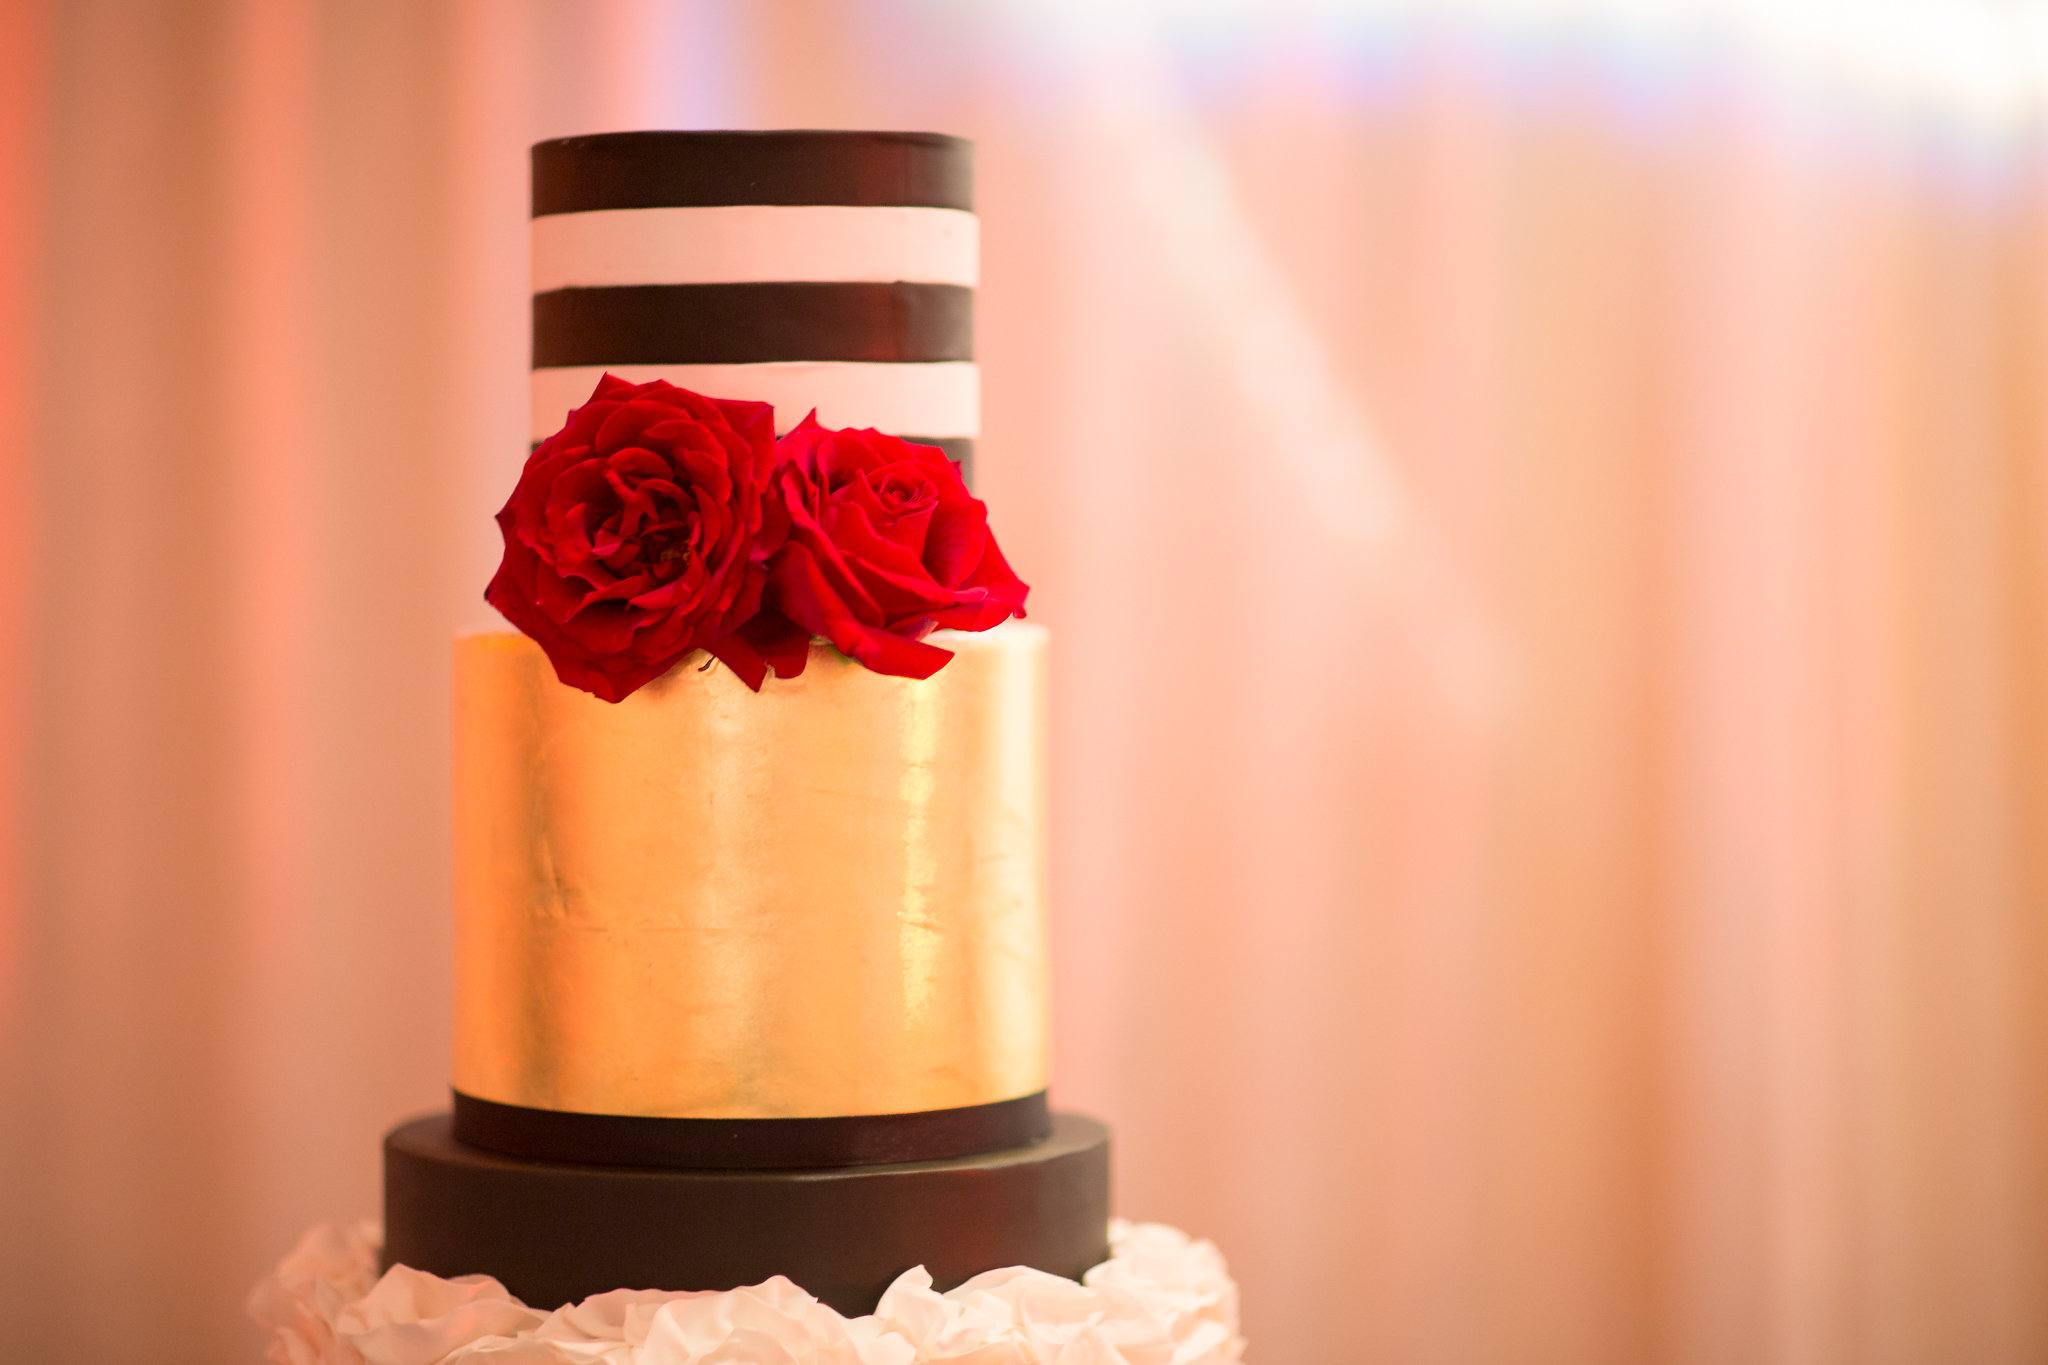 The Knowles Wedding - Custom Design Showcasing fondant ruffling, a tier gilded with 24K gold leaf and black and white stripes for a stunning contrast